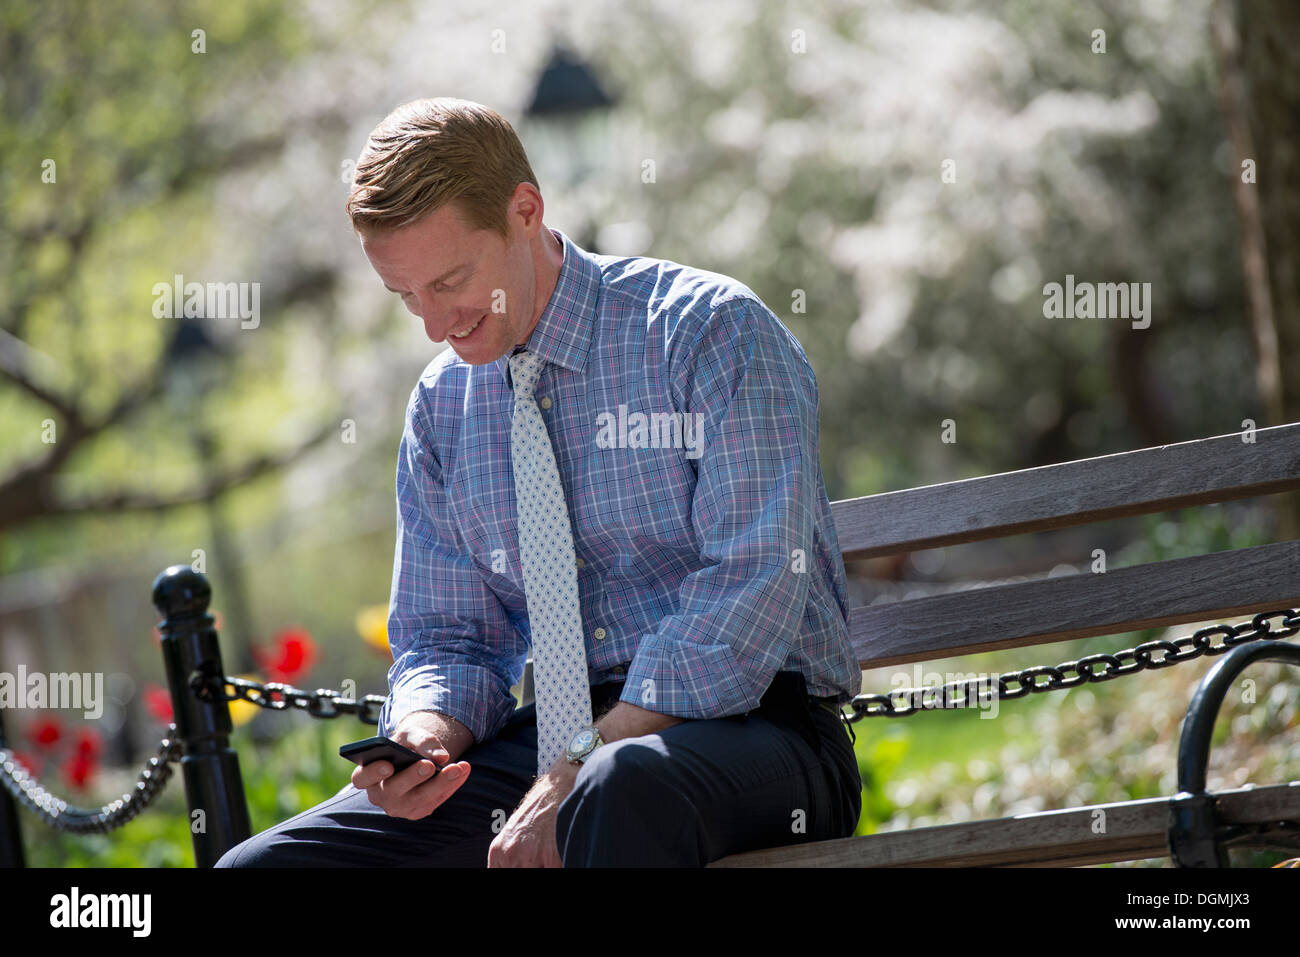 A businessman in a shirt with white tie, sitting on a park bench under the shade of a tree with blossom. - Stock Image